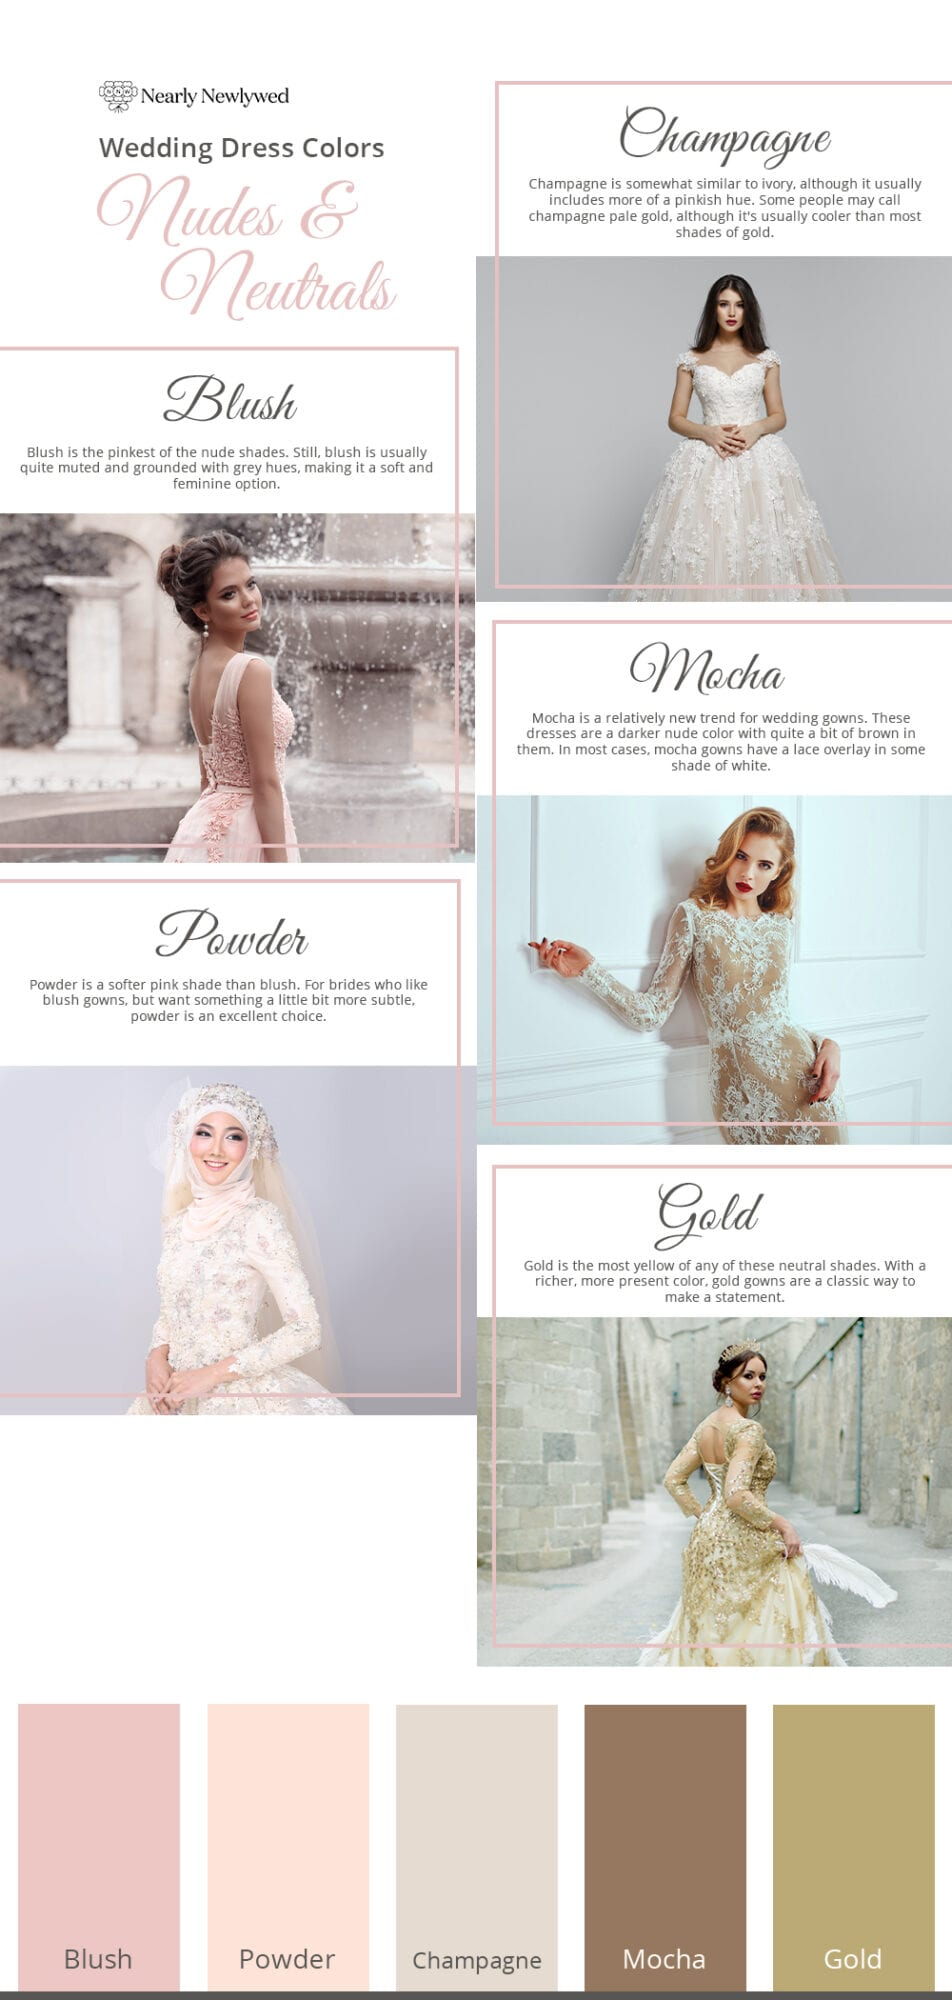 Nudes and Neutrals wedding dress color guide and palette